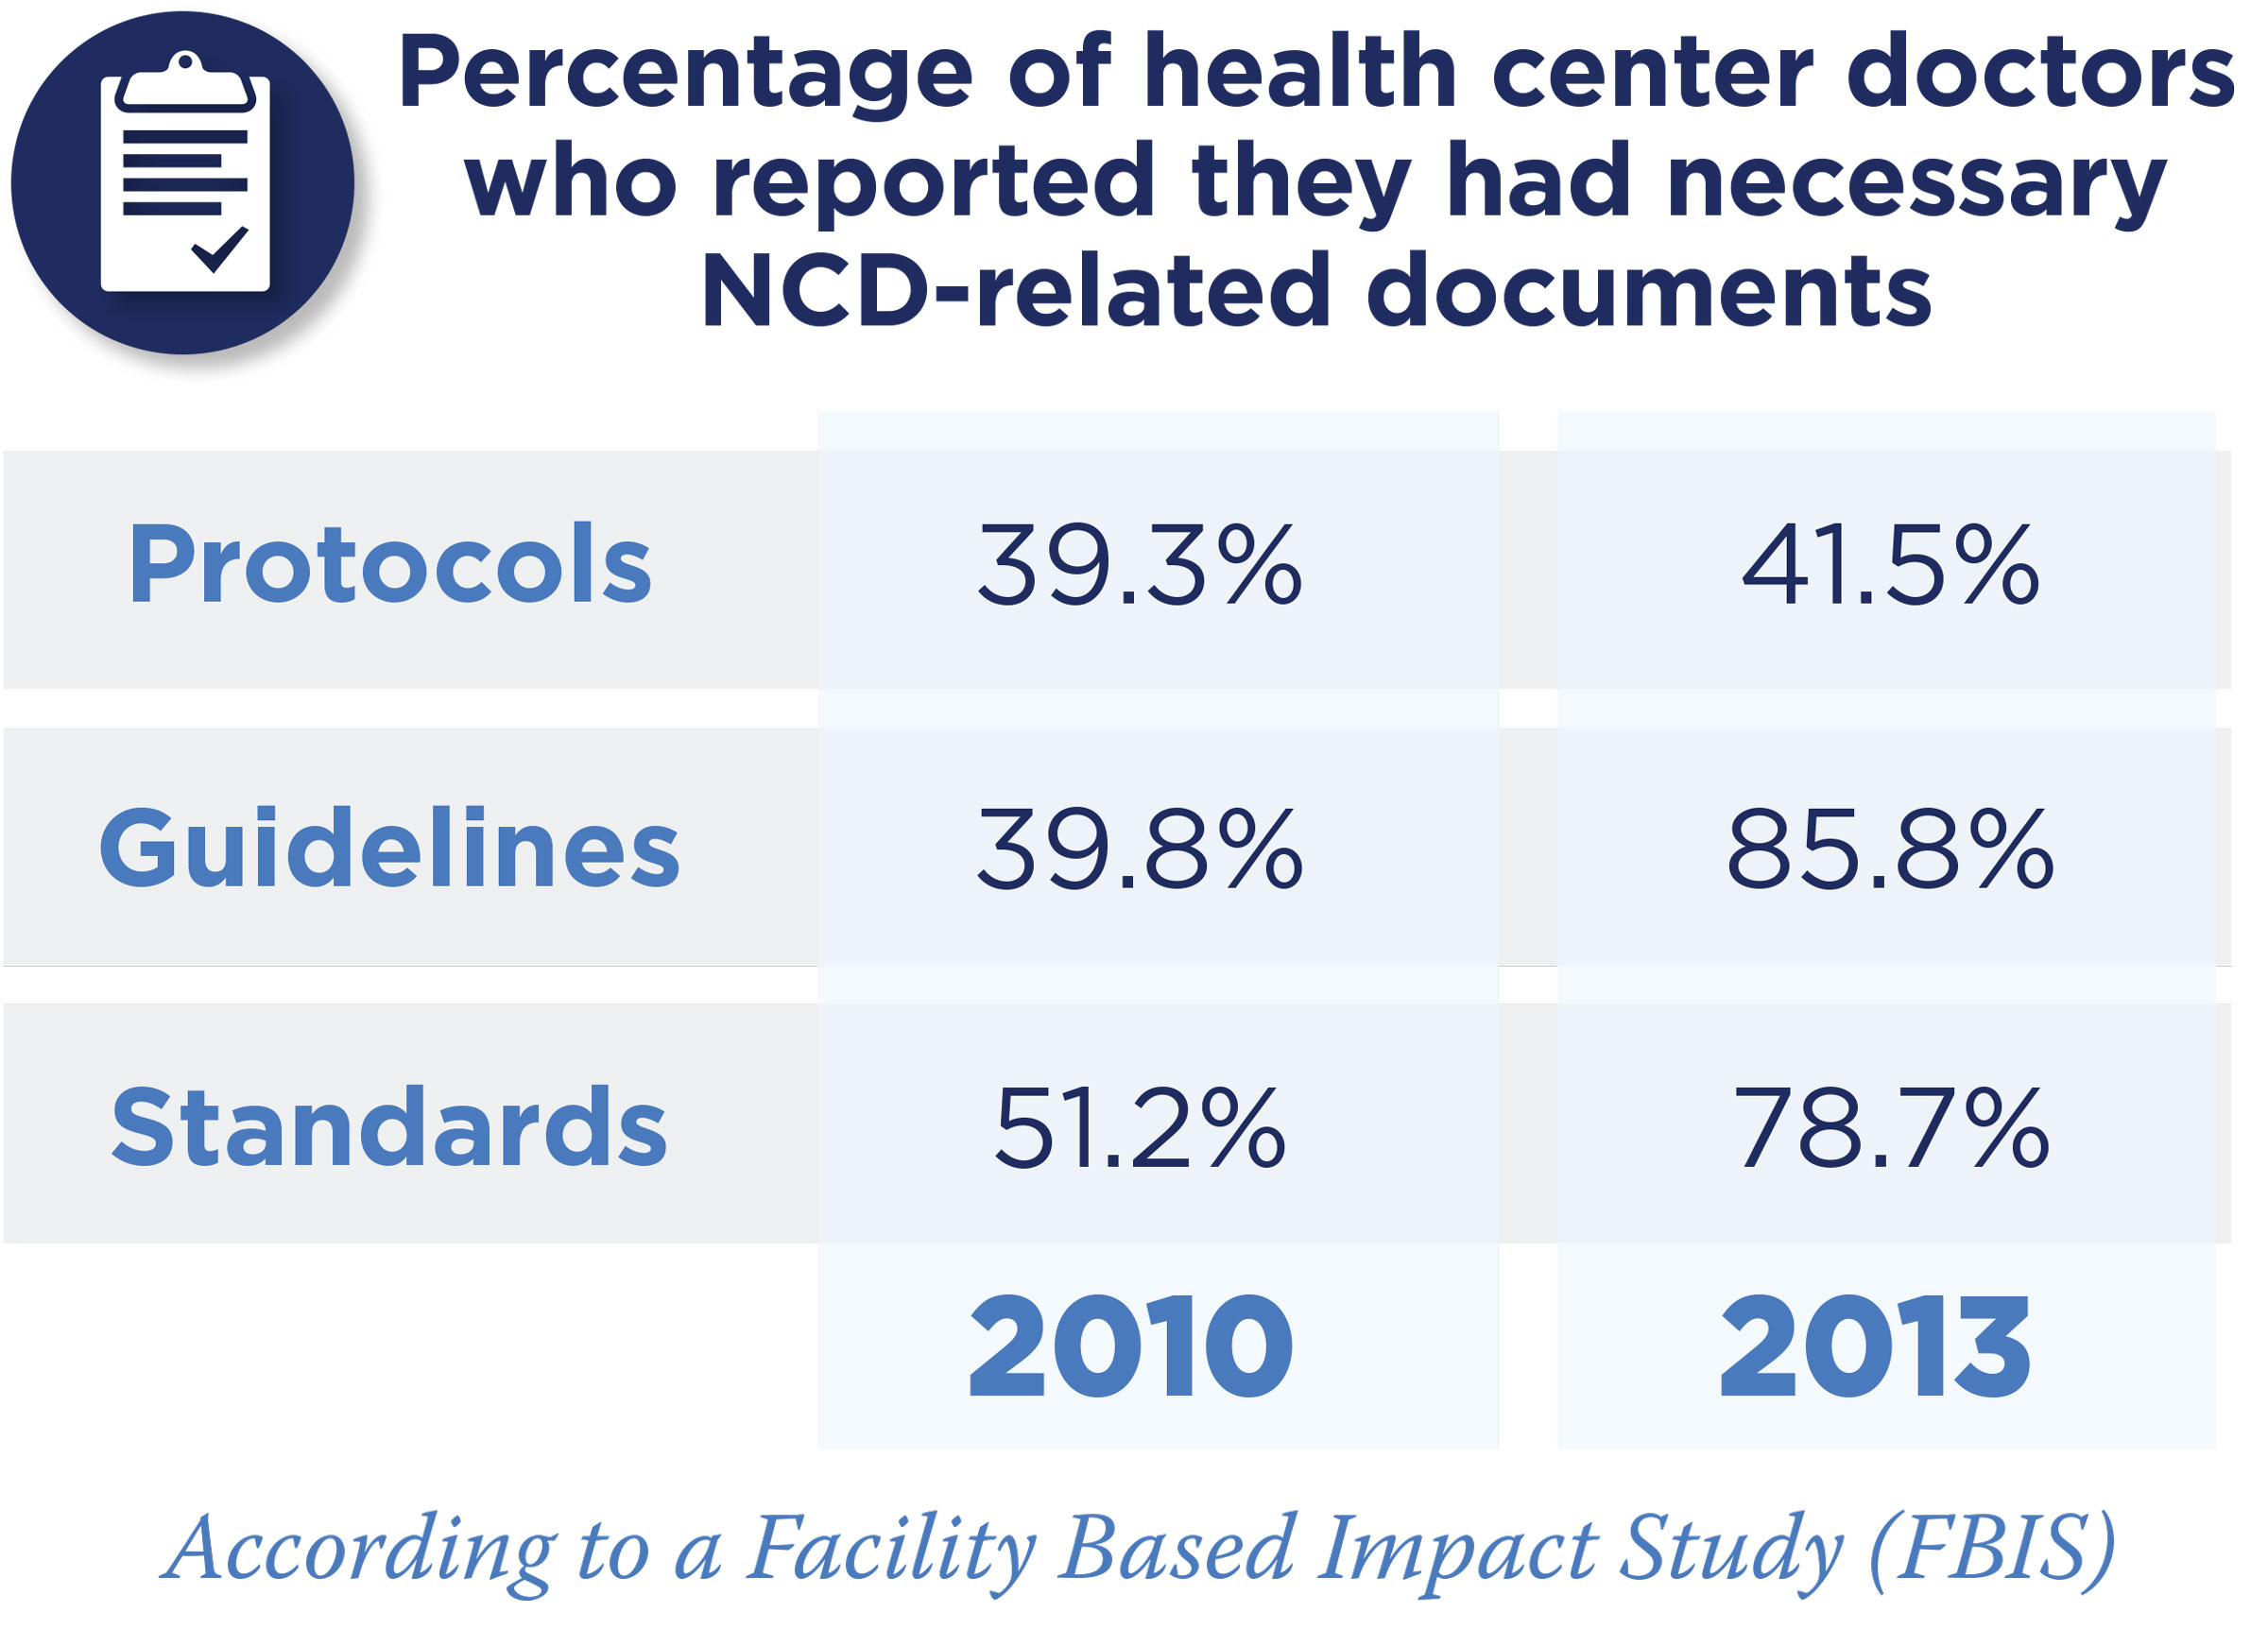 Percentage of health center doctors who reported they had necessary NCD-related documents.